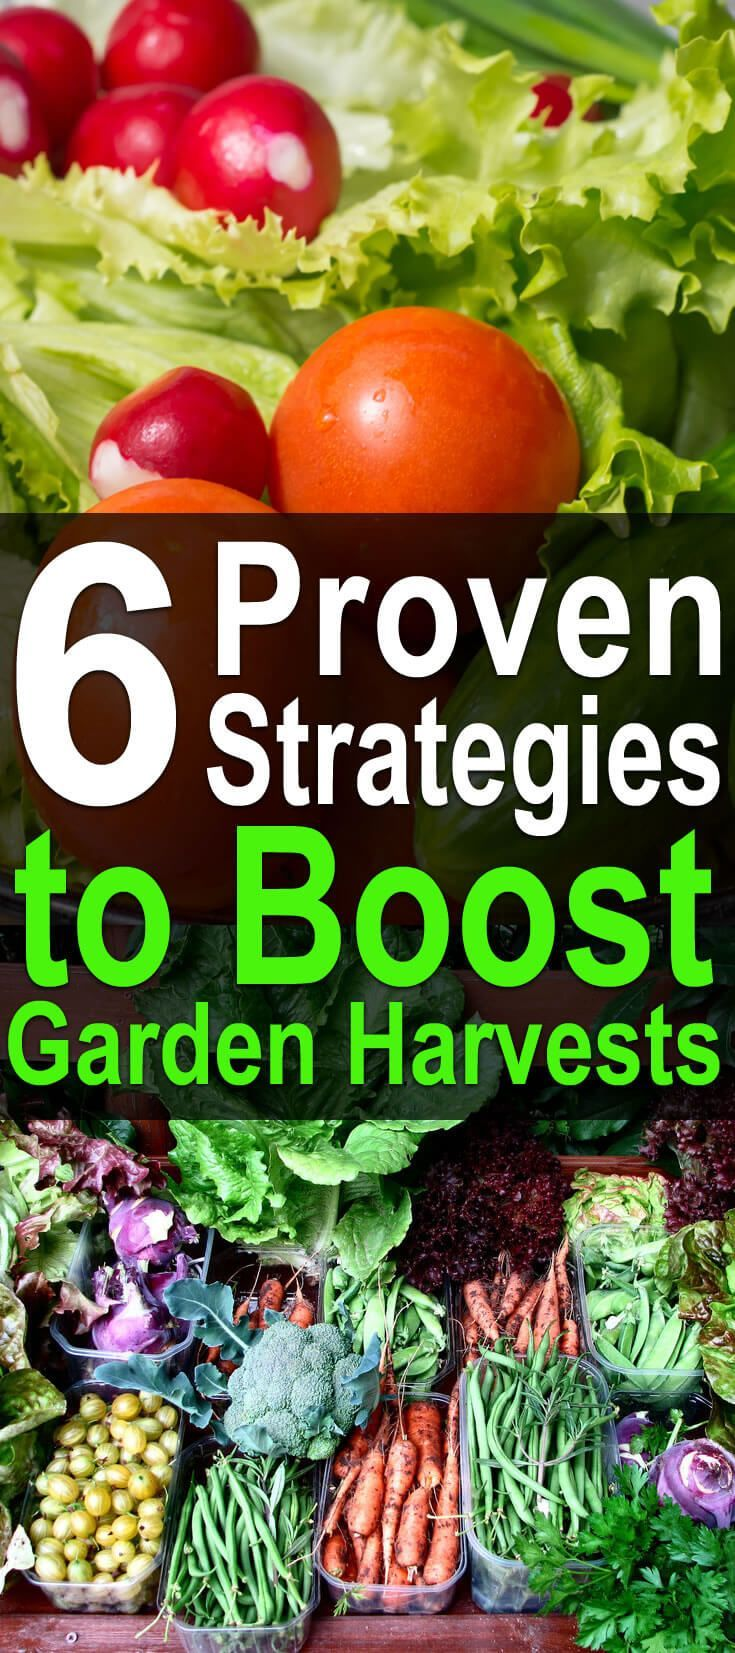 6 Proven Strategies to Boost Garden Harvests, increase yields. -The video is worth watching.